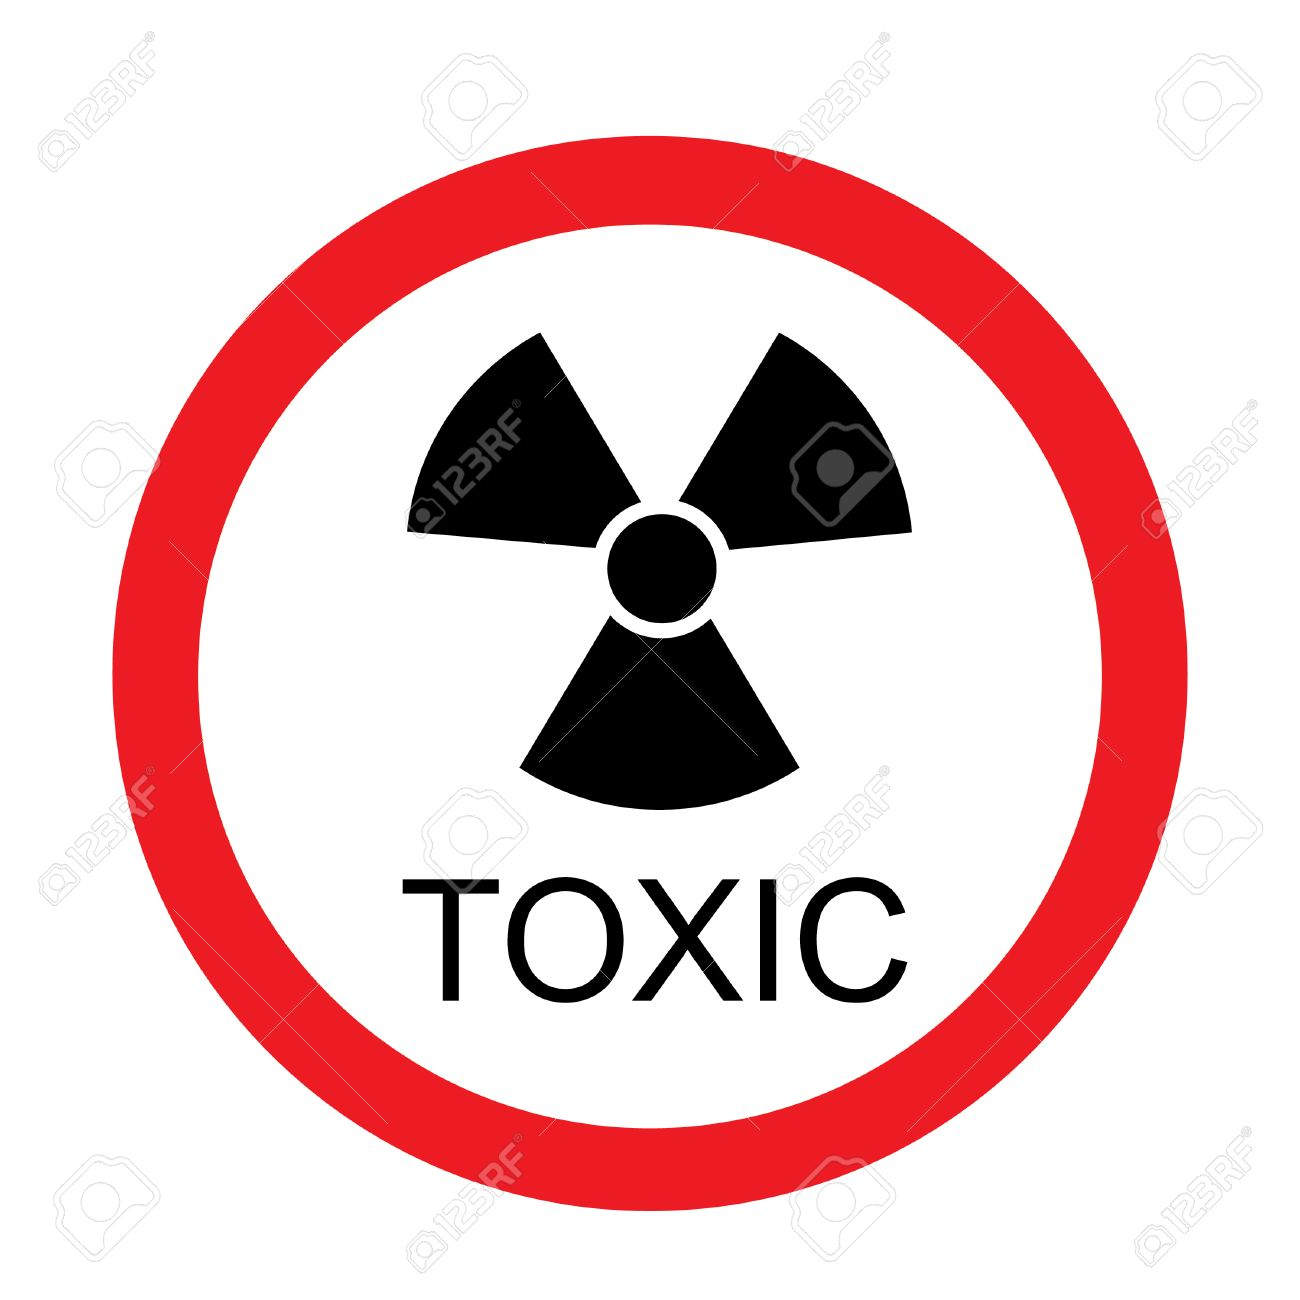 Round toxic sign vector isolated toxic symbol radiation chemical round toxic sign vector isolated toxic symbol radiation chemical stock vector 40211213 altavistaventures Images